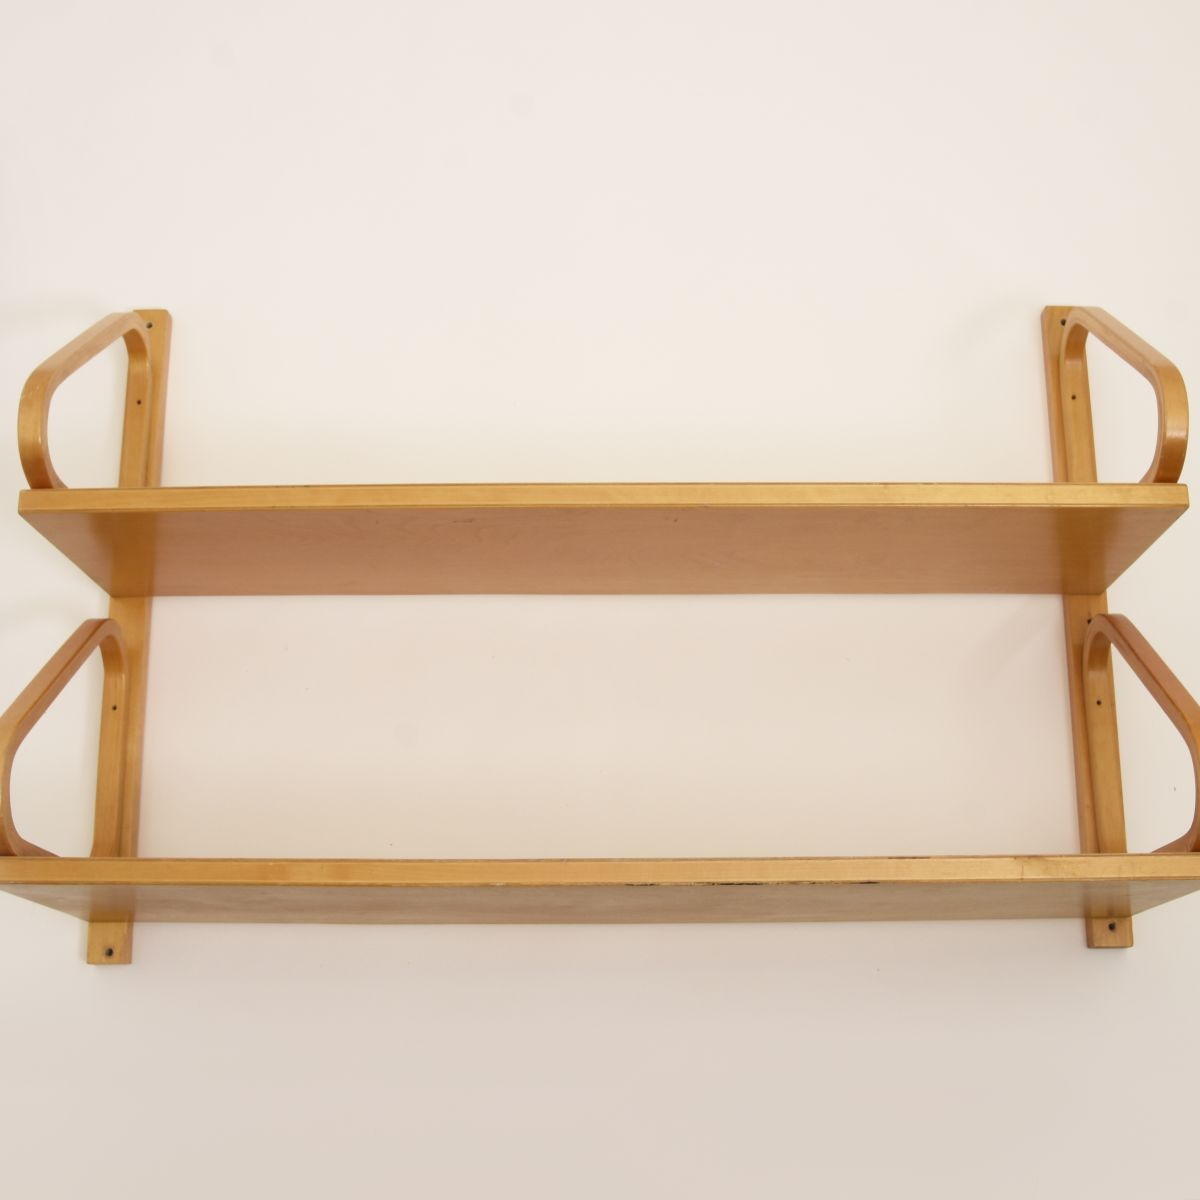 Aalto-Alvar-Wall-Shelf112-2_high_res